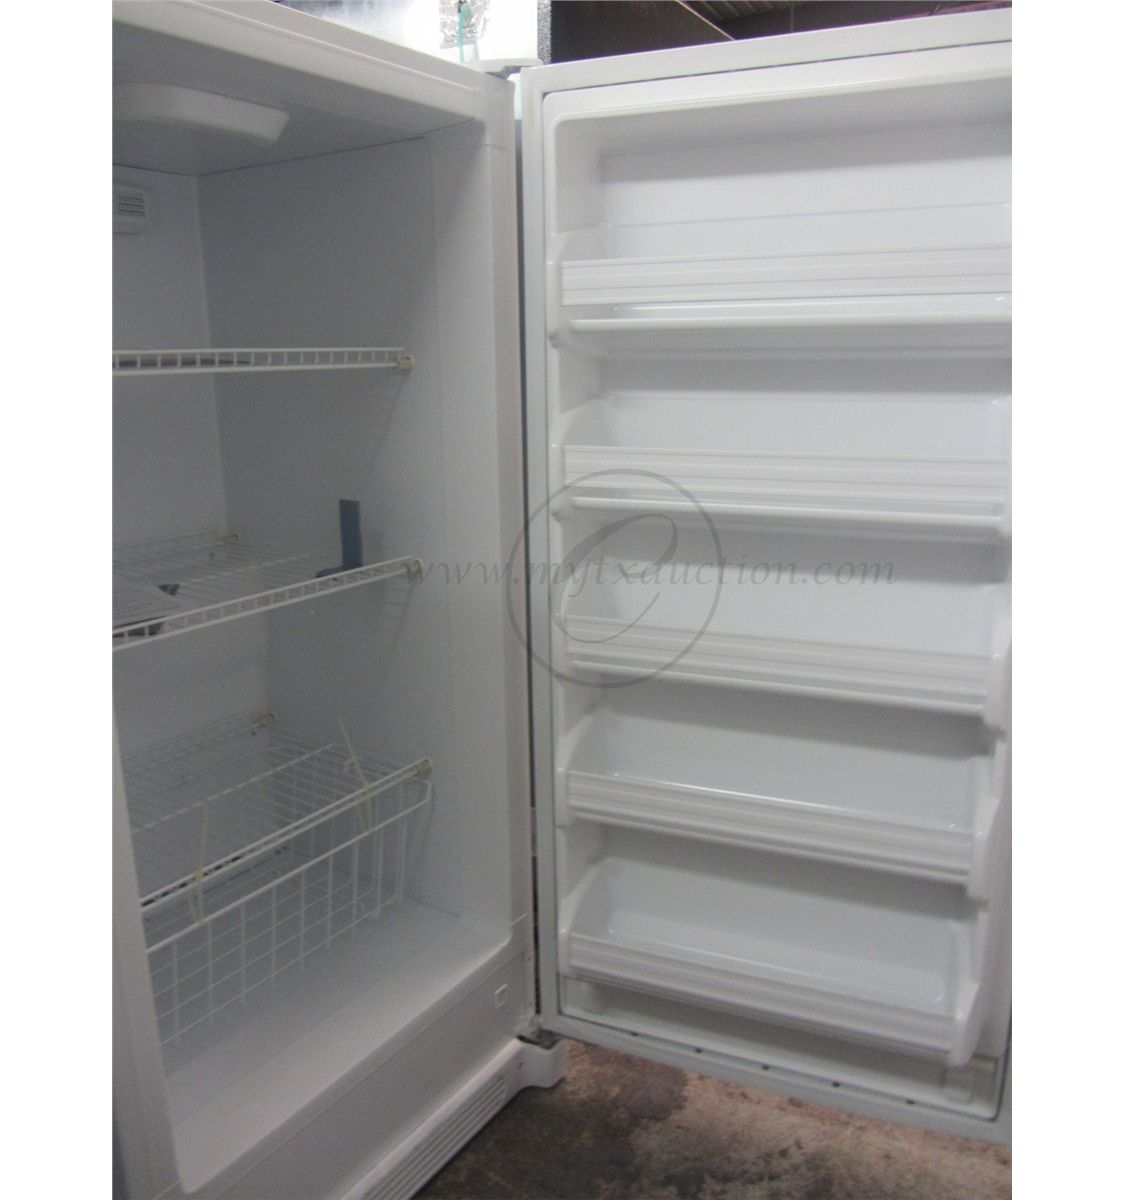 50 Cubic Feet Chest Freezer Frigidaire 202cu Ft Frostfree